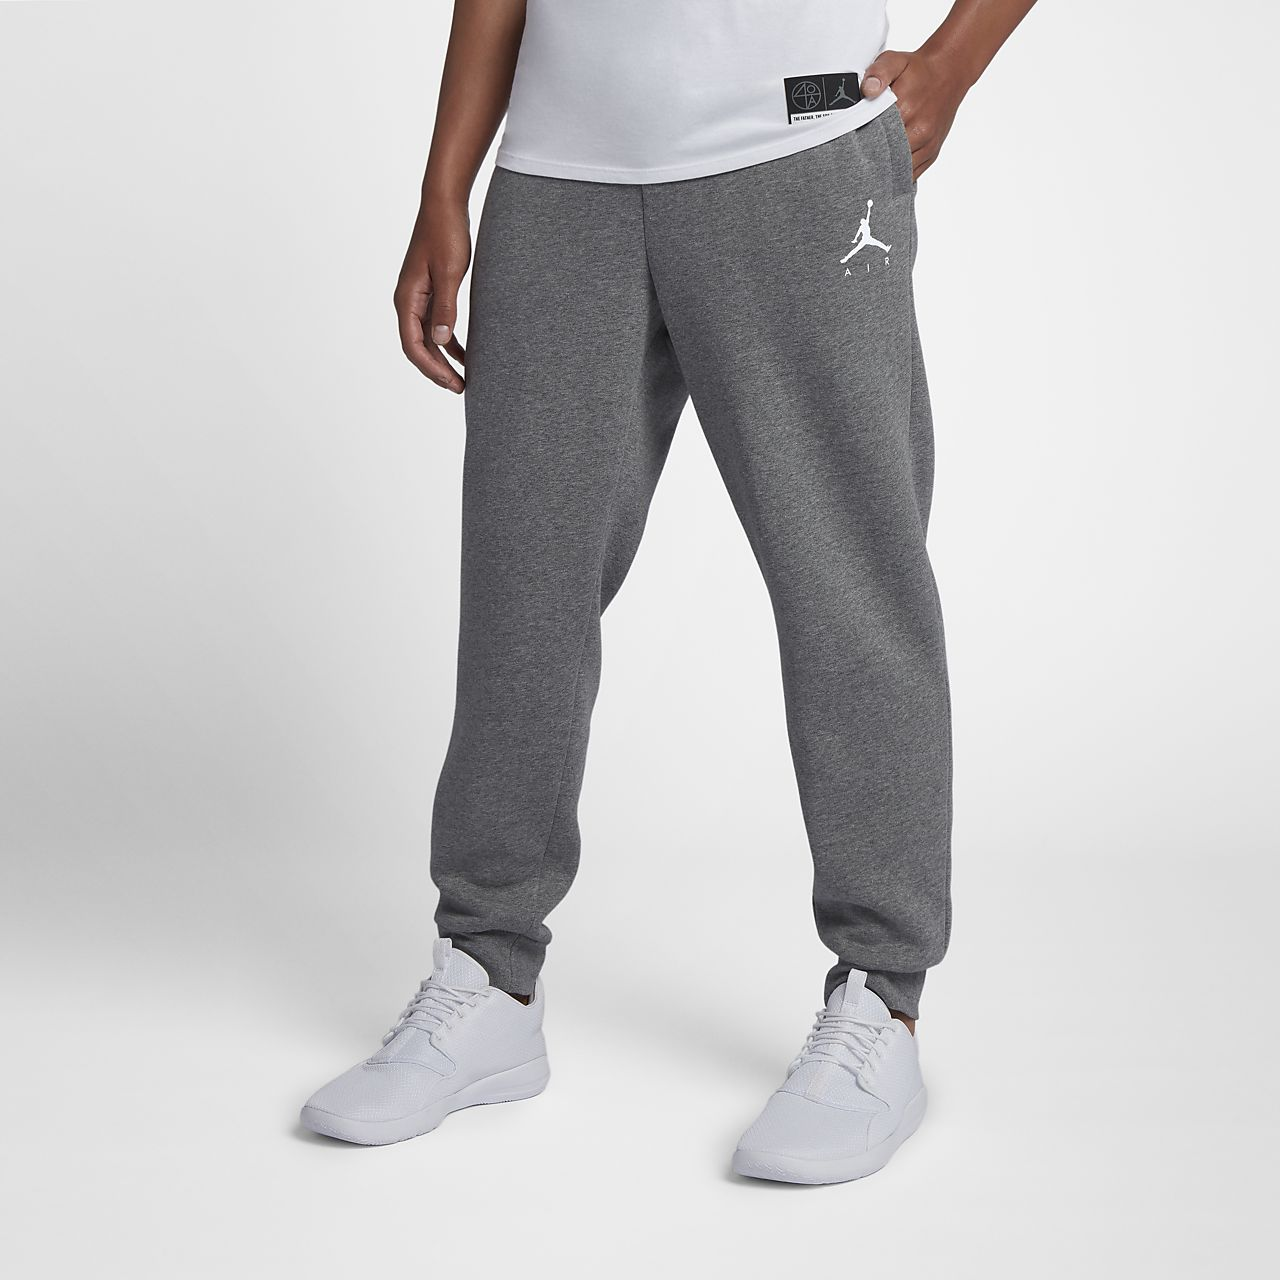 986e49debb4 Jordan Jumpman Air Men's Fleece Pants. Nike.com